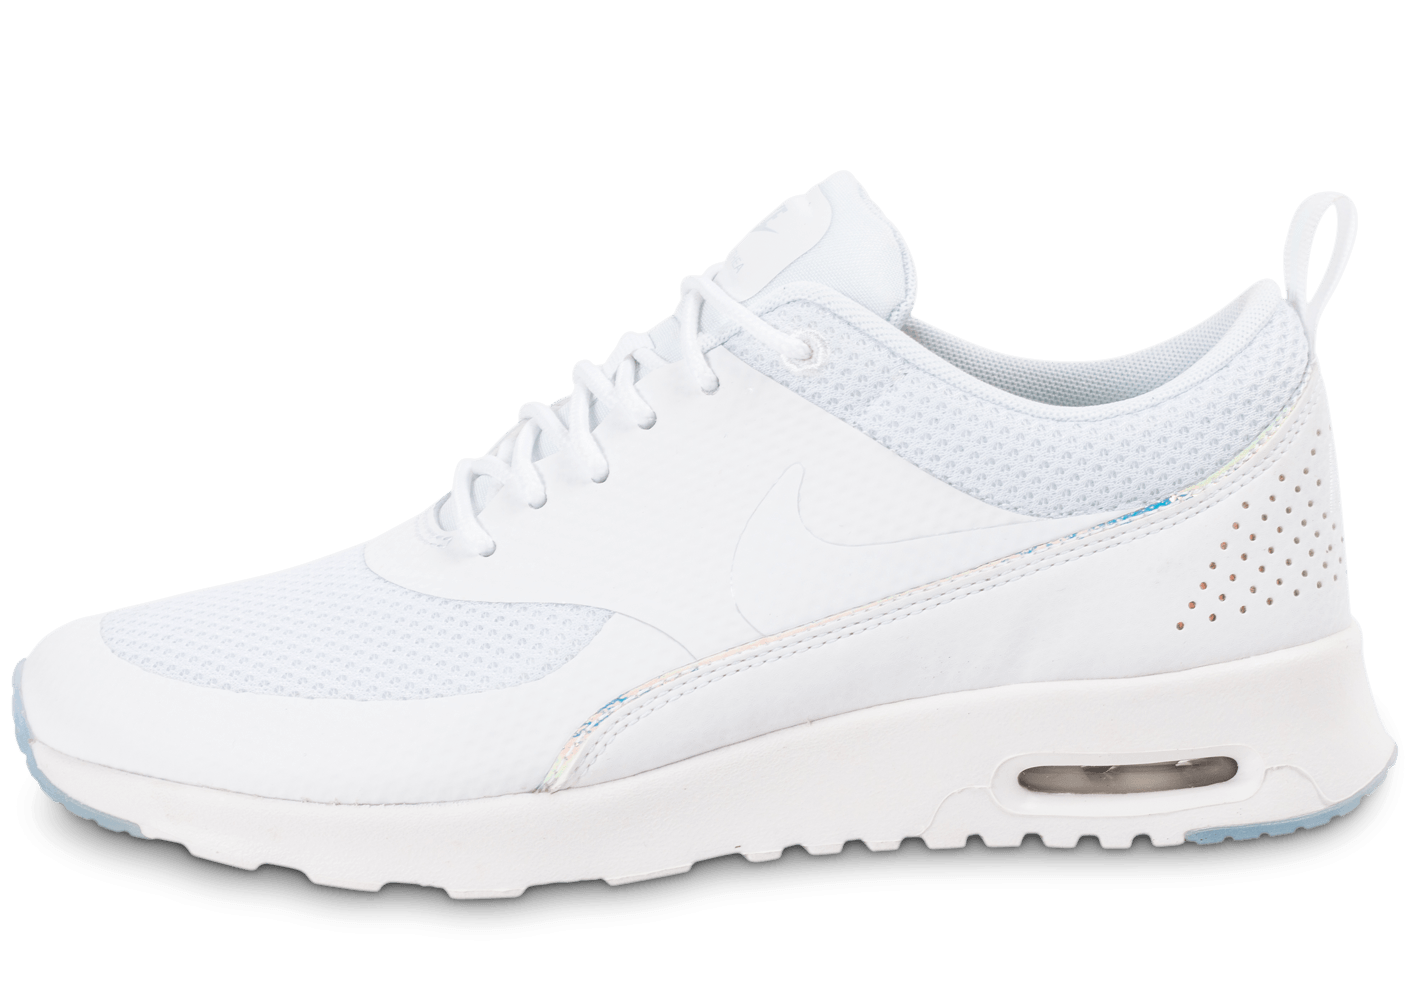 timeless design 8b5c3 54fdc Nike Air Max Thea PRM blanche iridescente - Chaussures Baskets femme -  Chausport